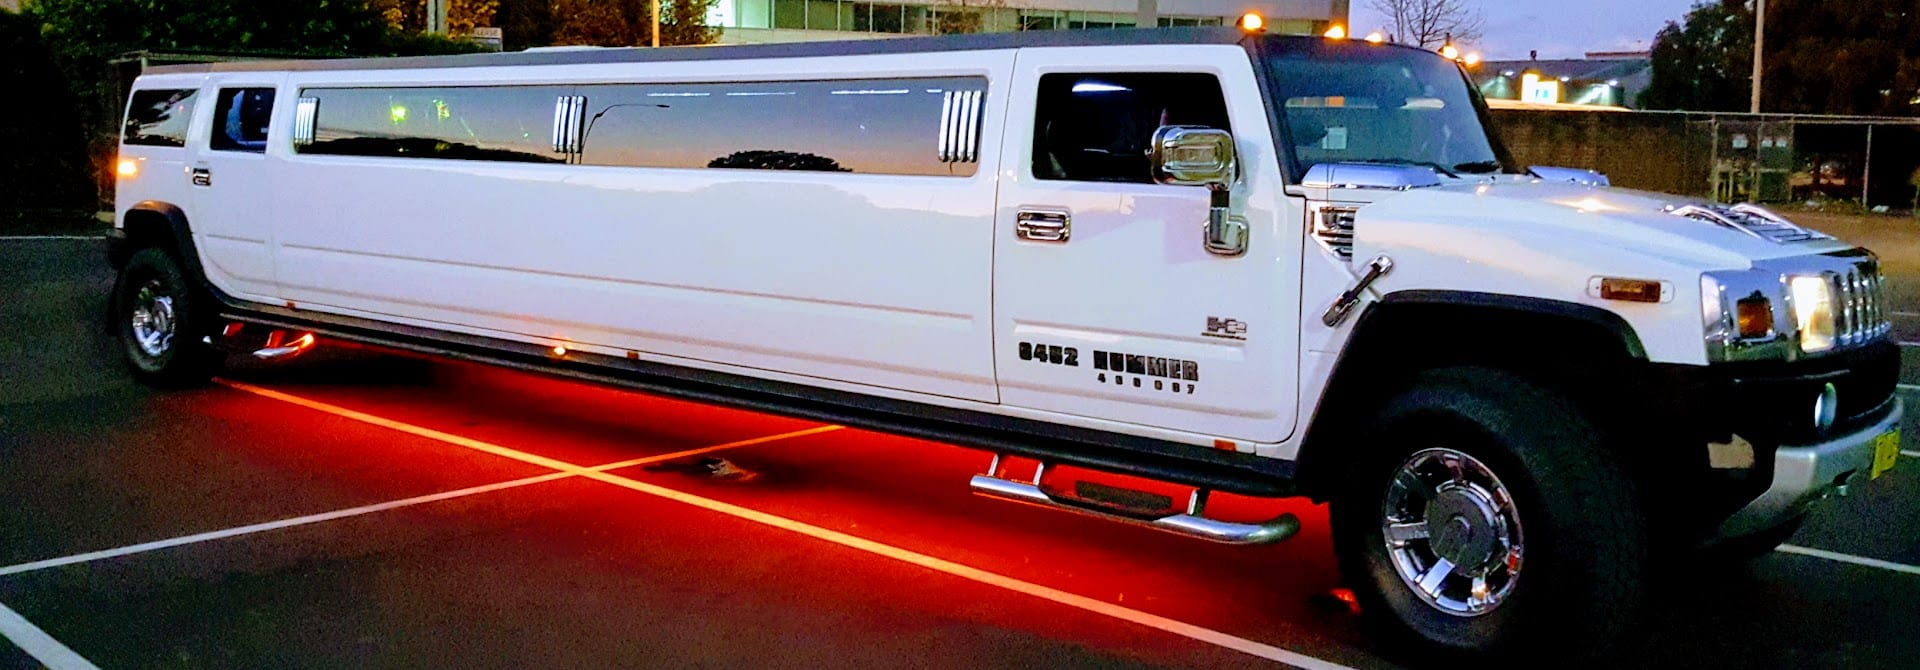 18 Seat Pink Hummer Oz Limo Hire